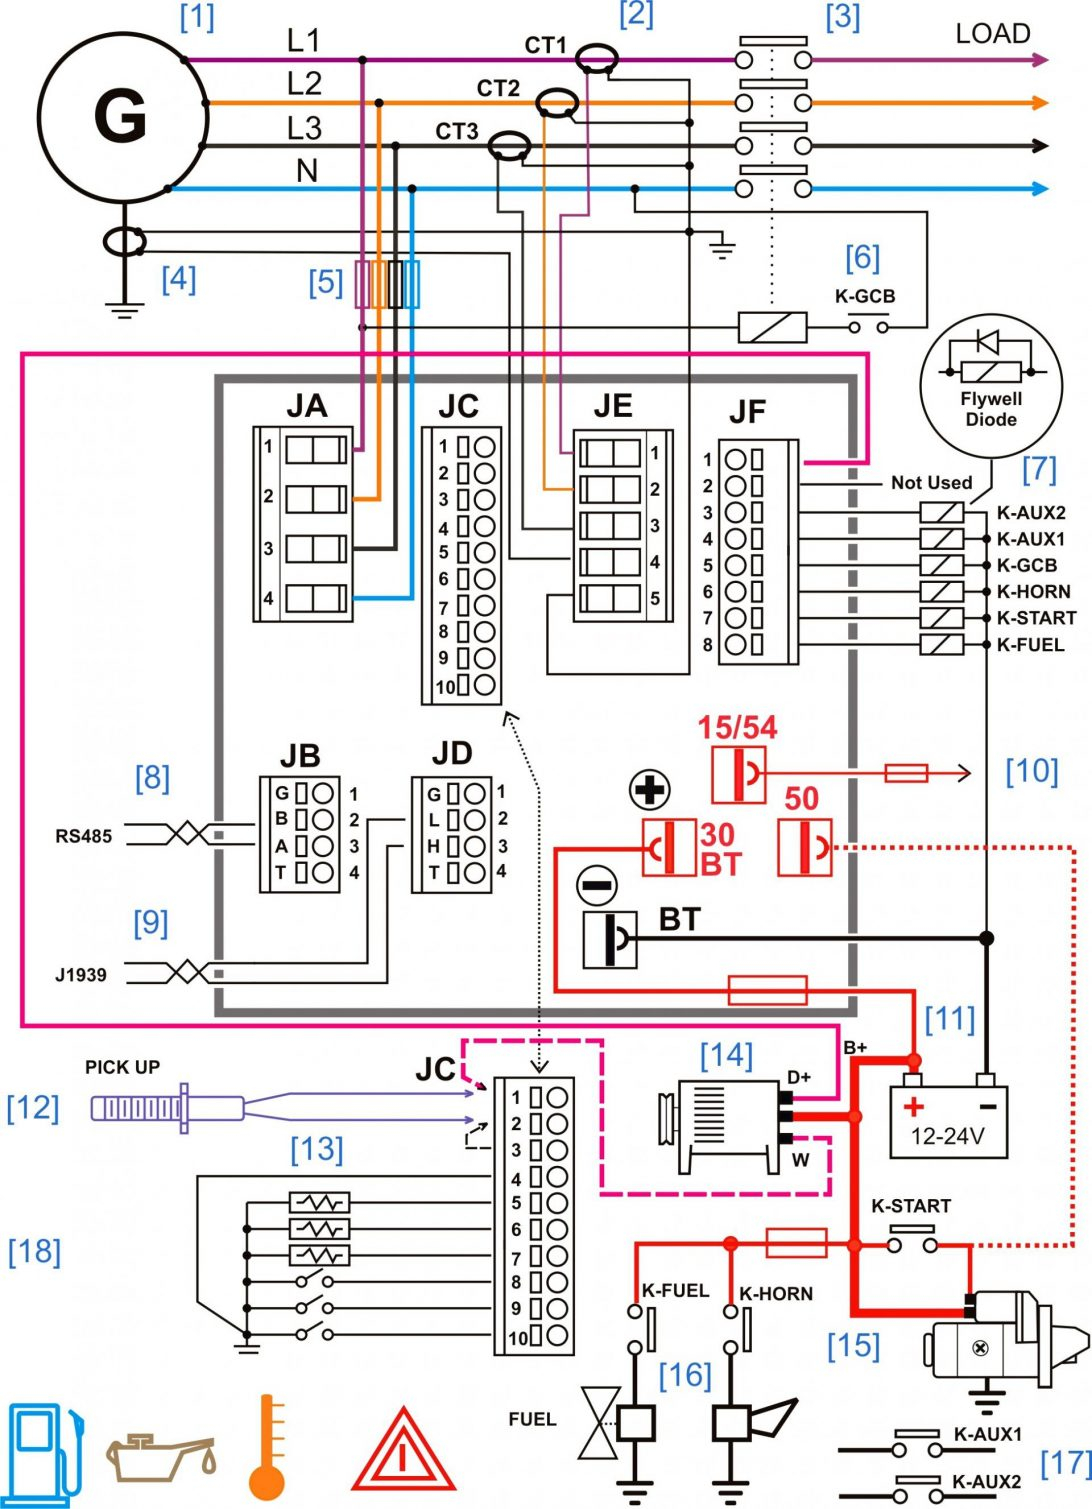 addressable fire alarm system wiring diagram Download-Low Voltage Outdoor Lighting Wiring Diagram Awesome Nice Addressable Fire Alarm System Wiring Diagram Gallery 19-a